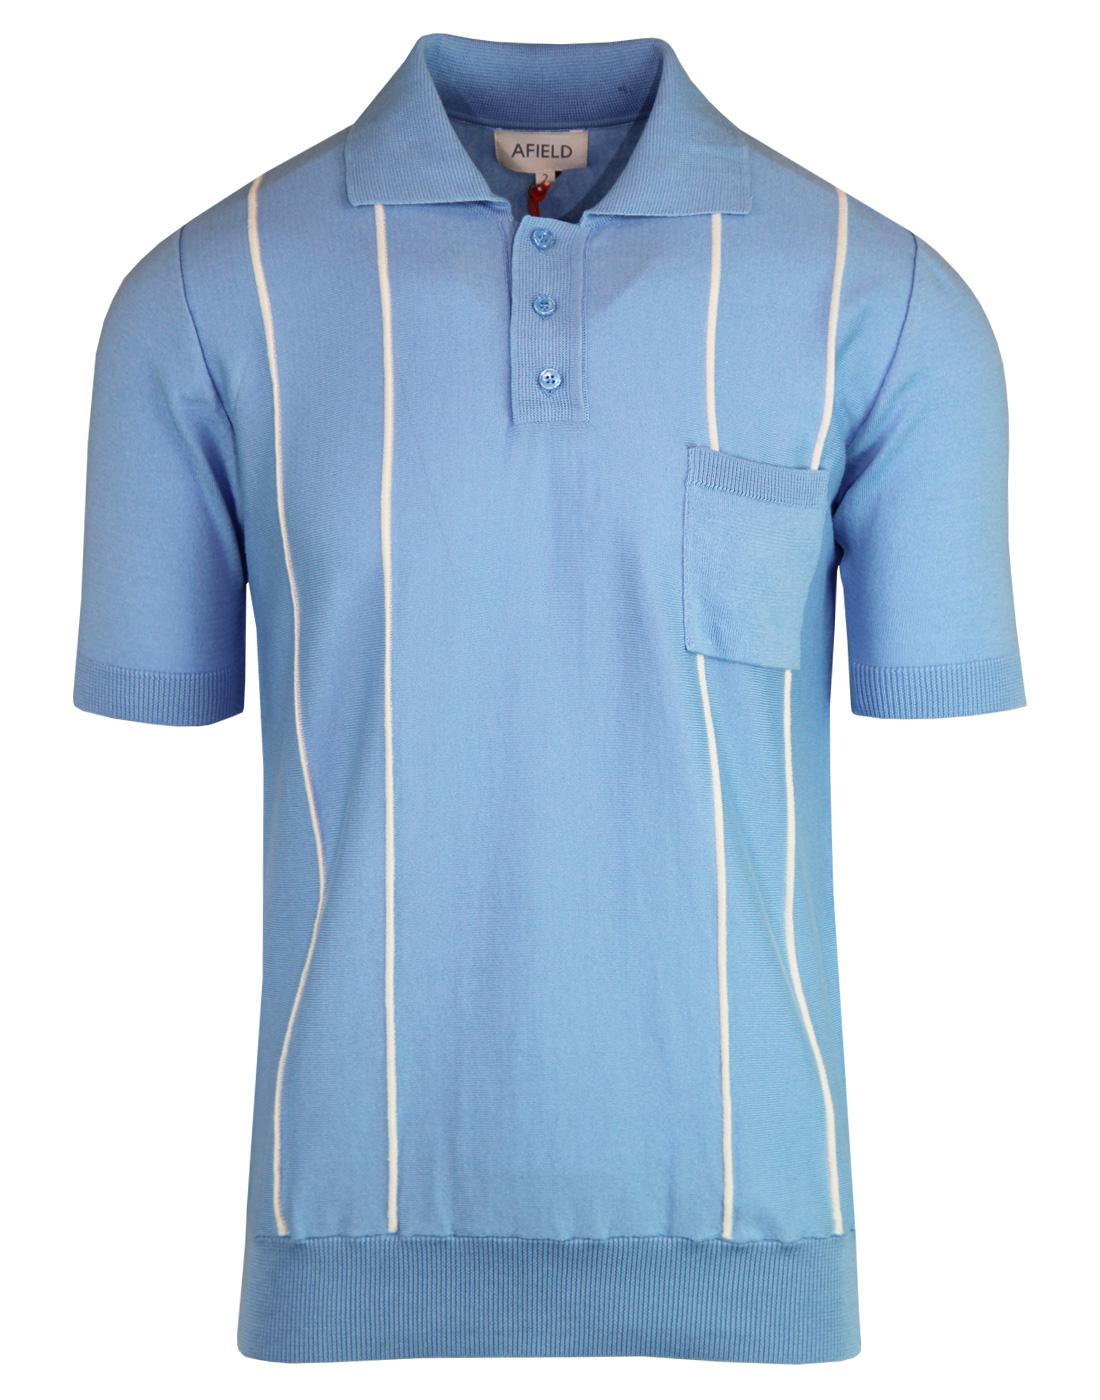 Alfaro AFIELD 60s Mod Raised Stripe Knit Polo Top